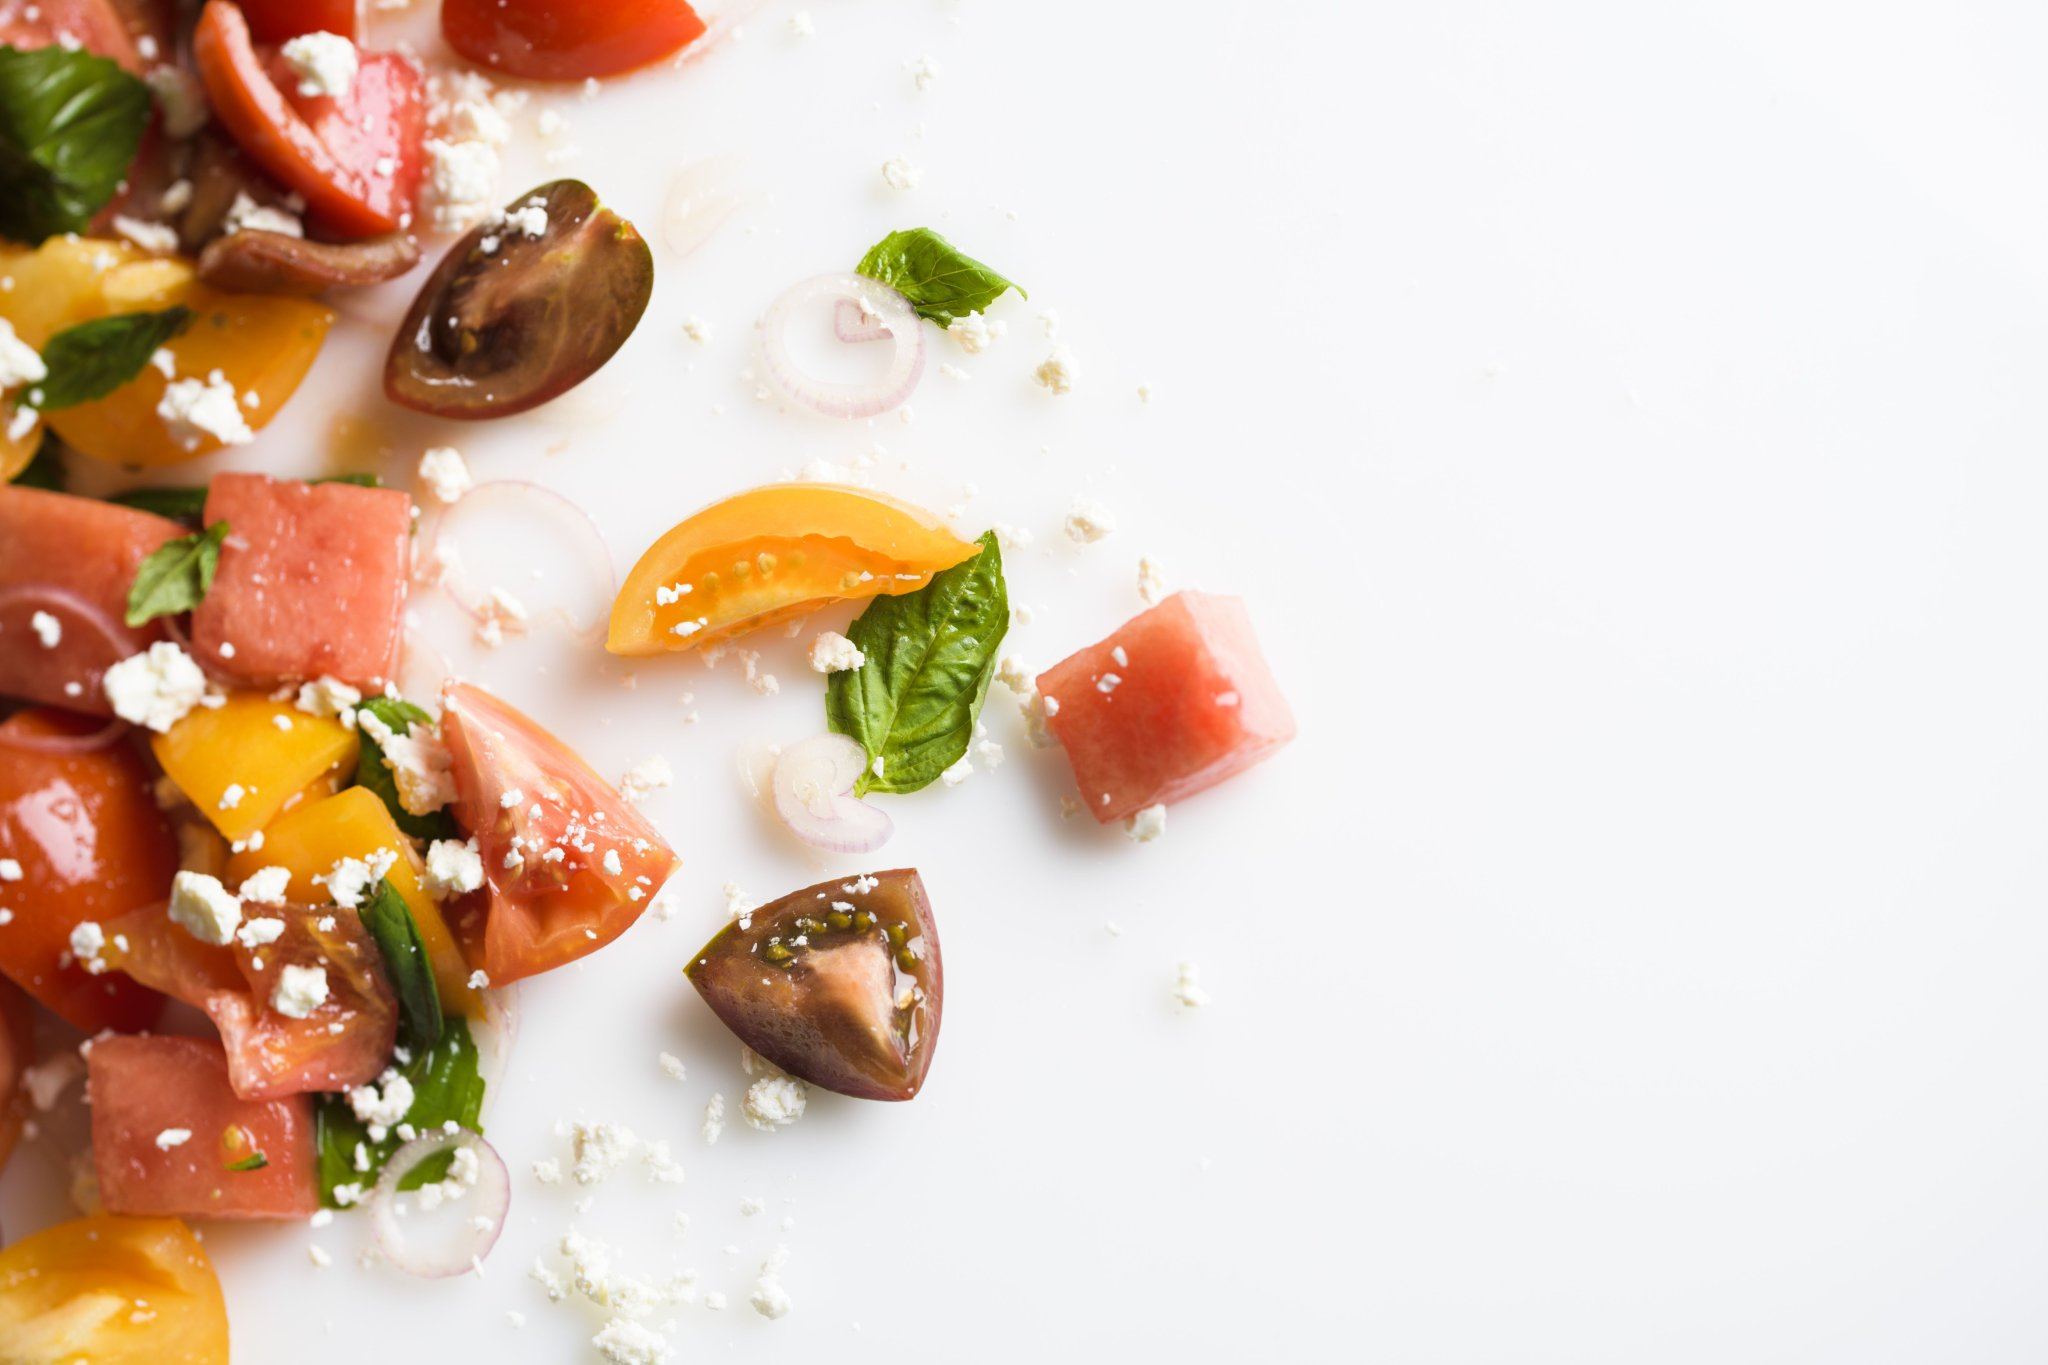 Tomato and Watermelon Salad with Basil and Goat Cheese